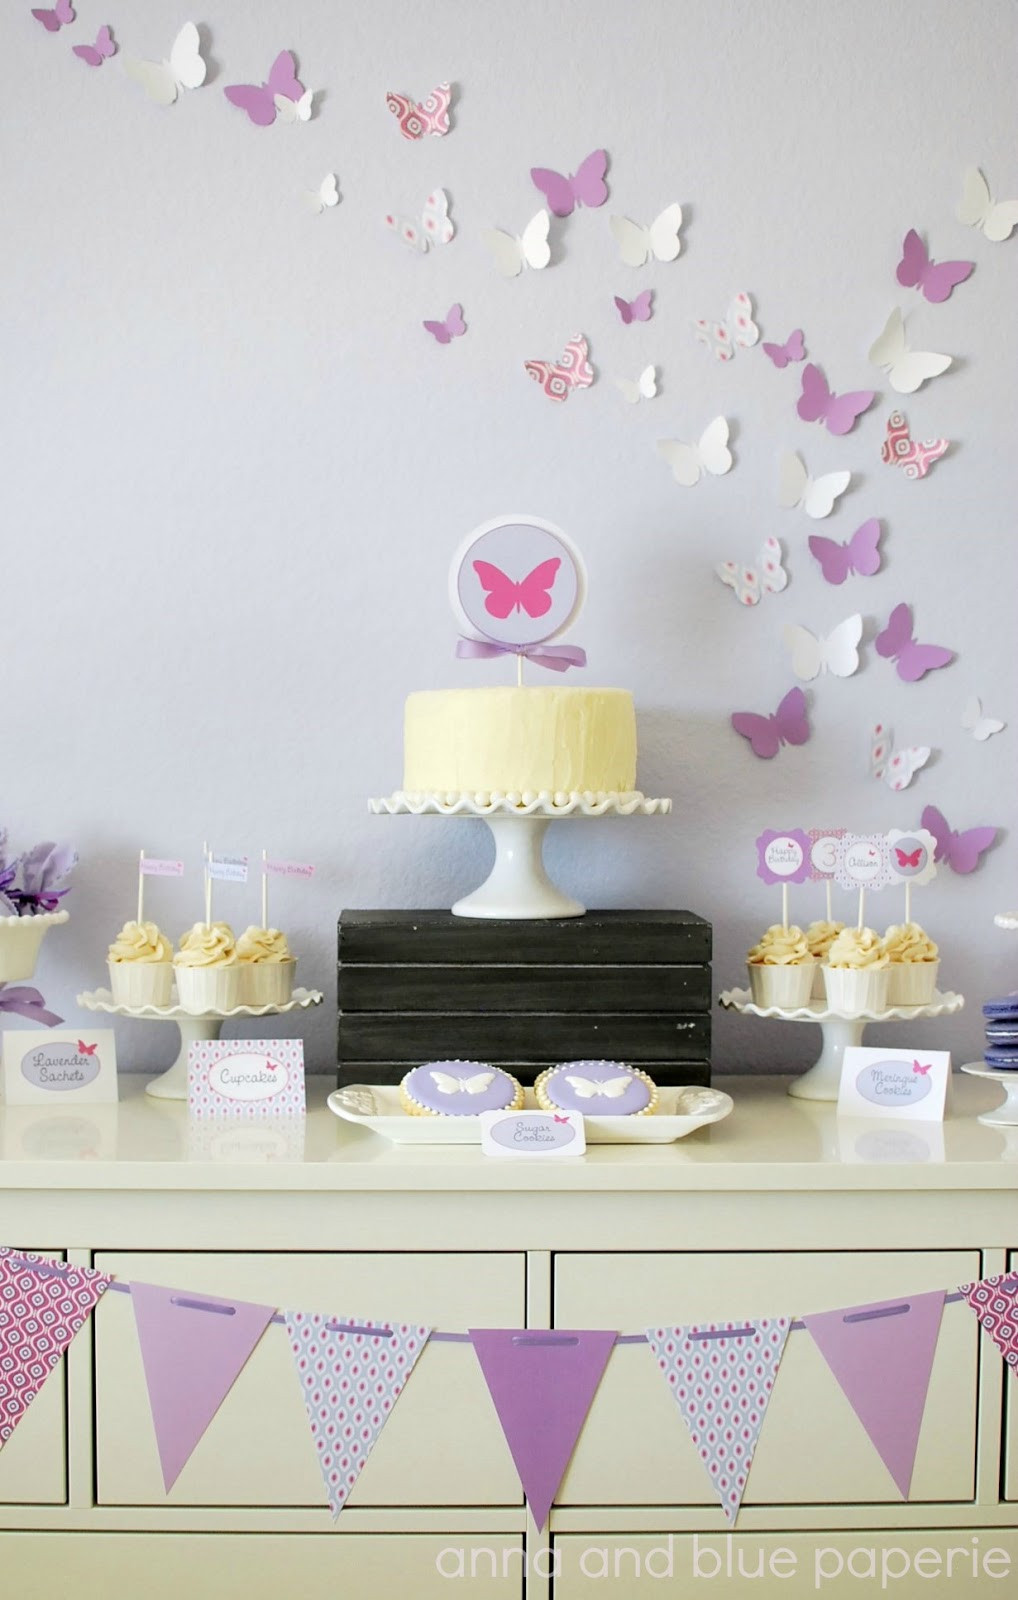 Best ideas about Butterfly Birthday Decorations . Save or Pin anna and blue paperie New to the Shop Butterfly Party Now.